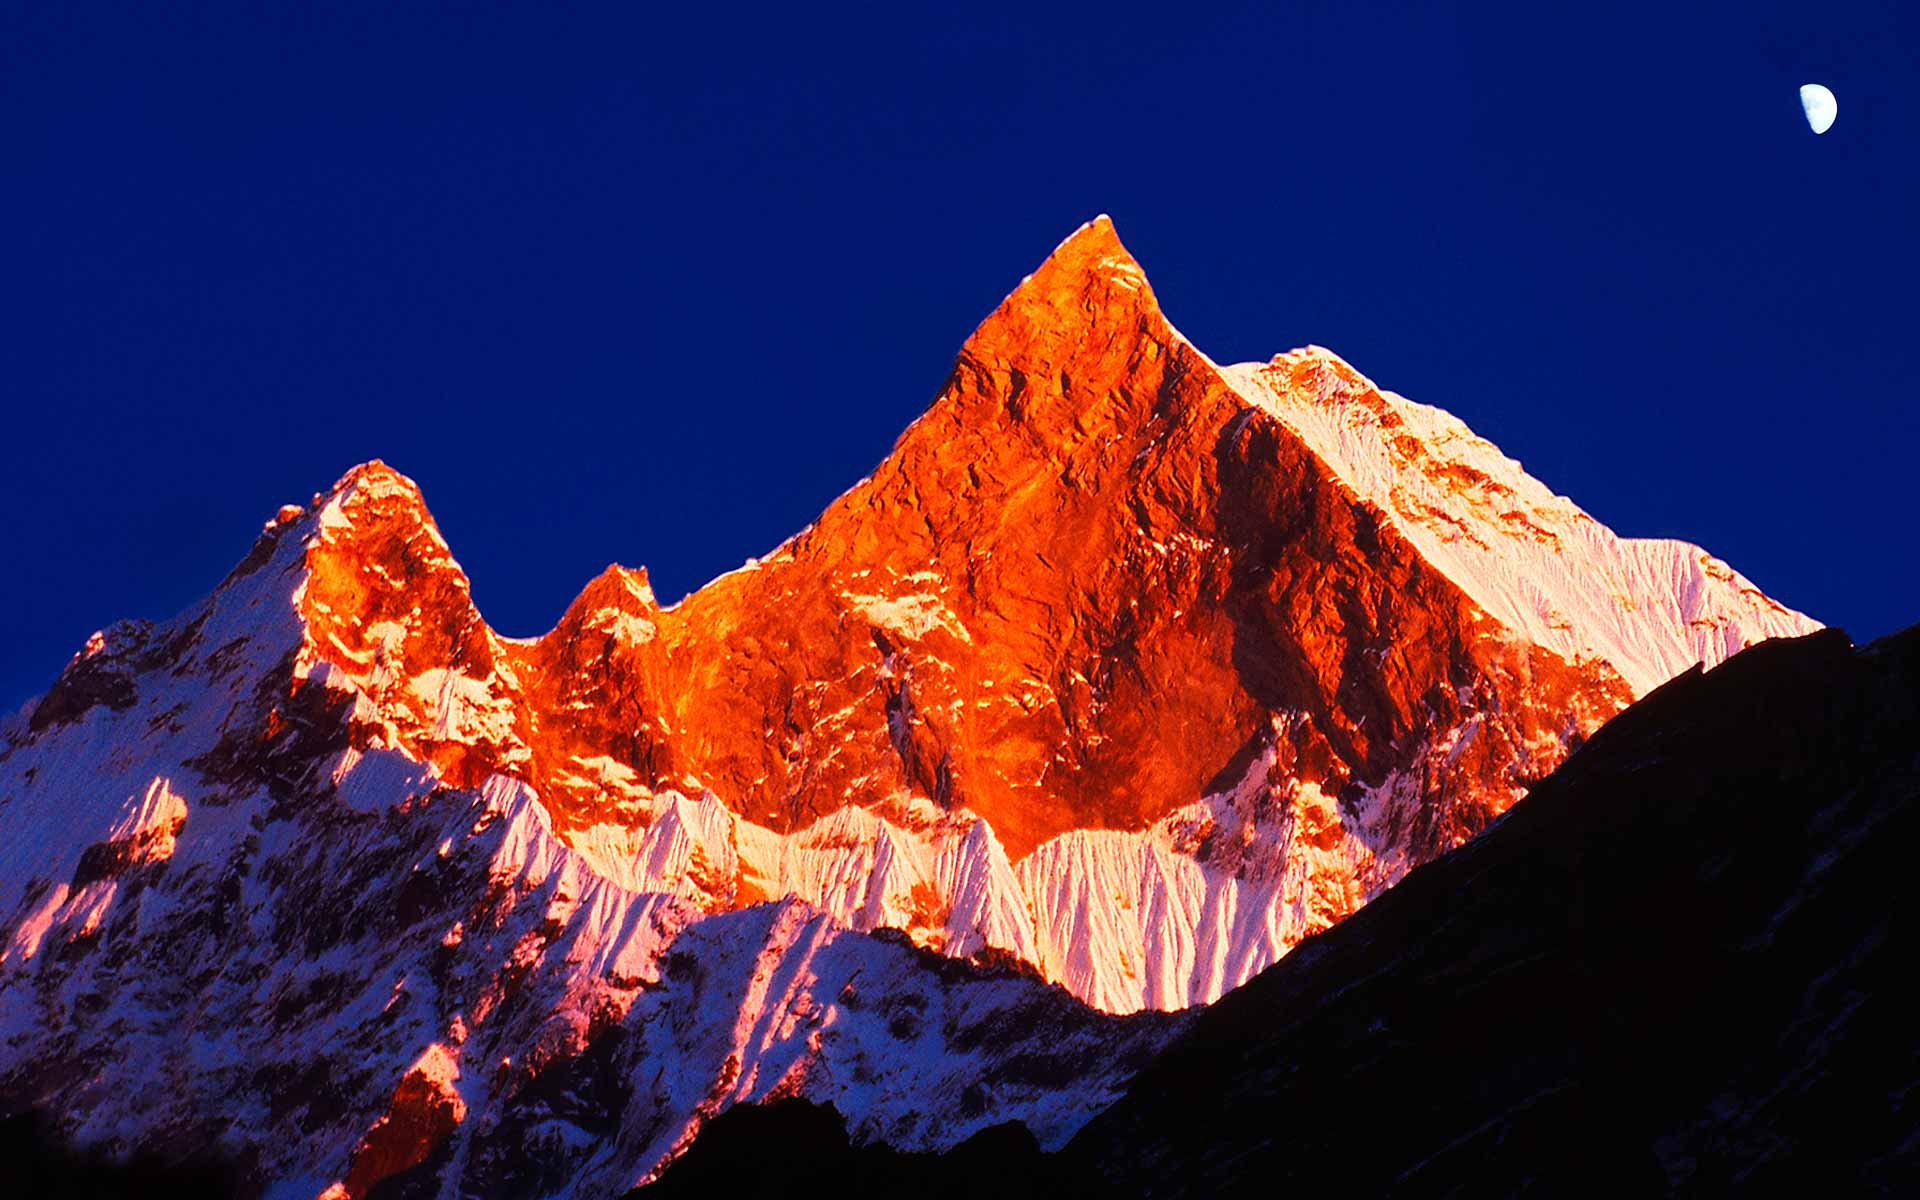 Norbert Klora Photo Machapuchare, Nepal, Trekking